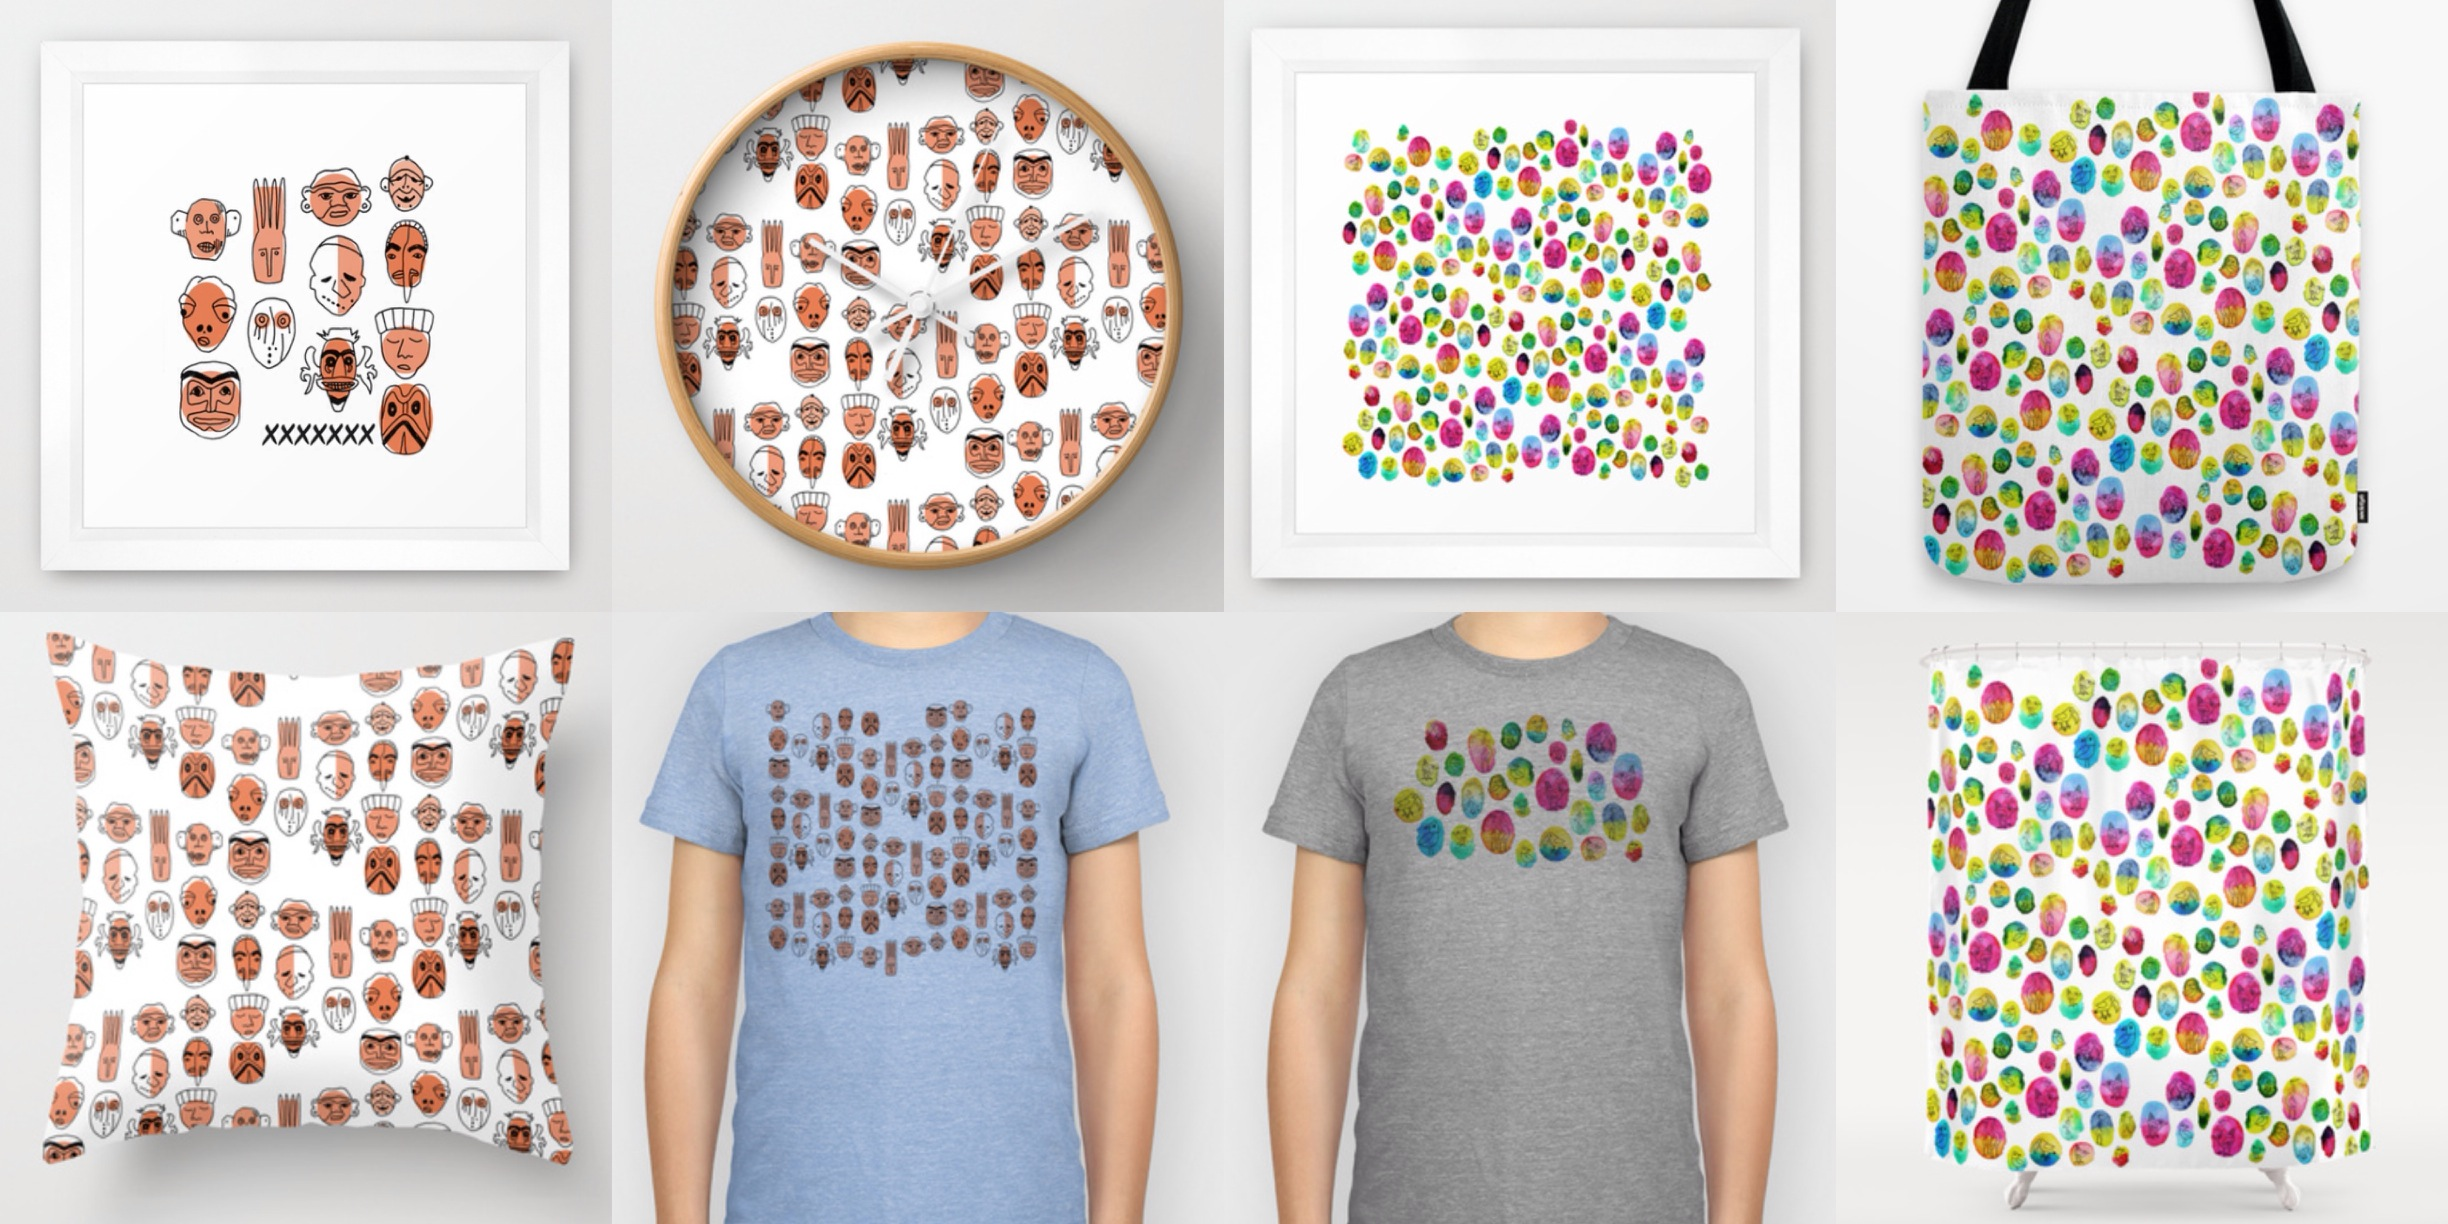 society6 | 129 year of creative habits